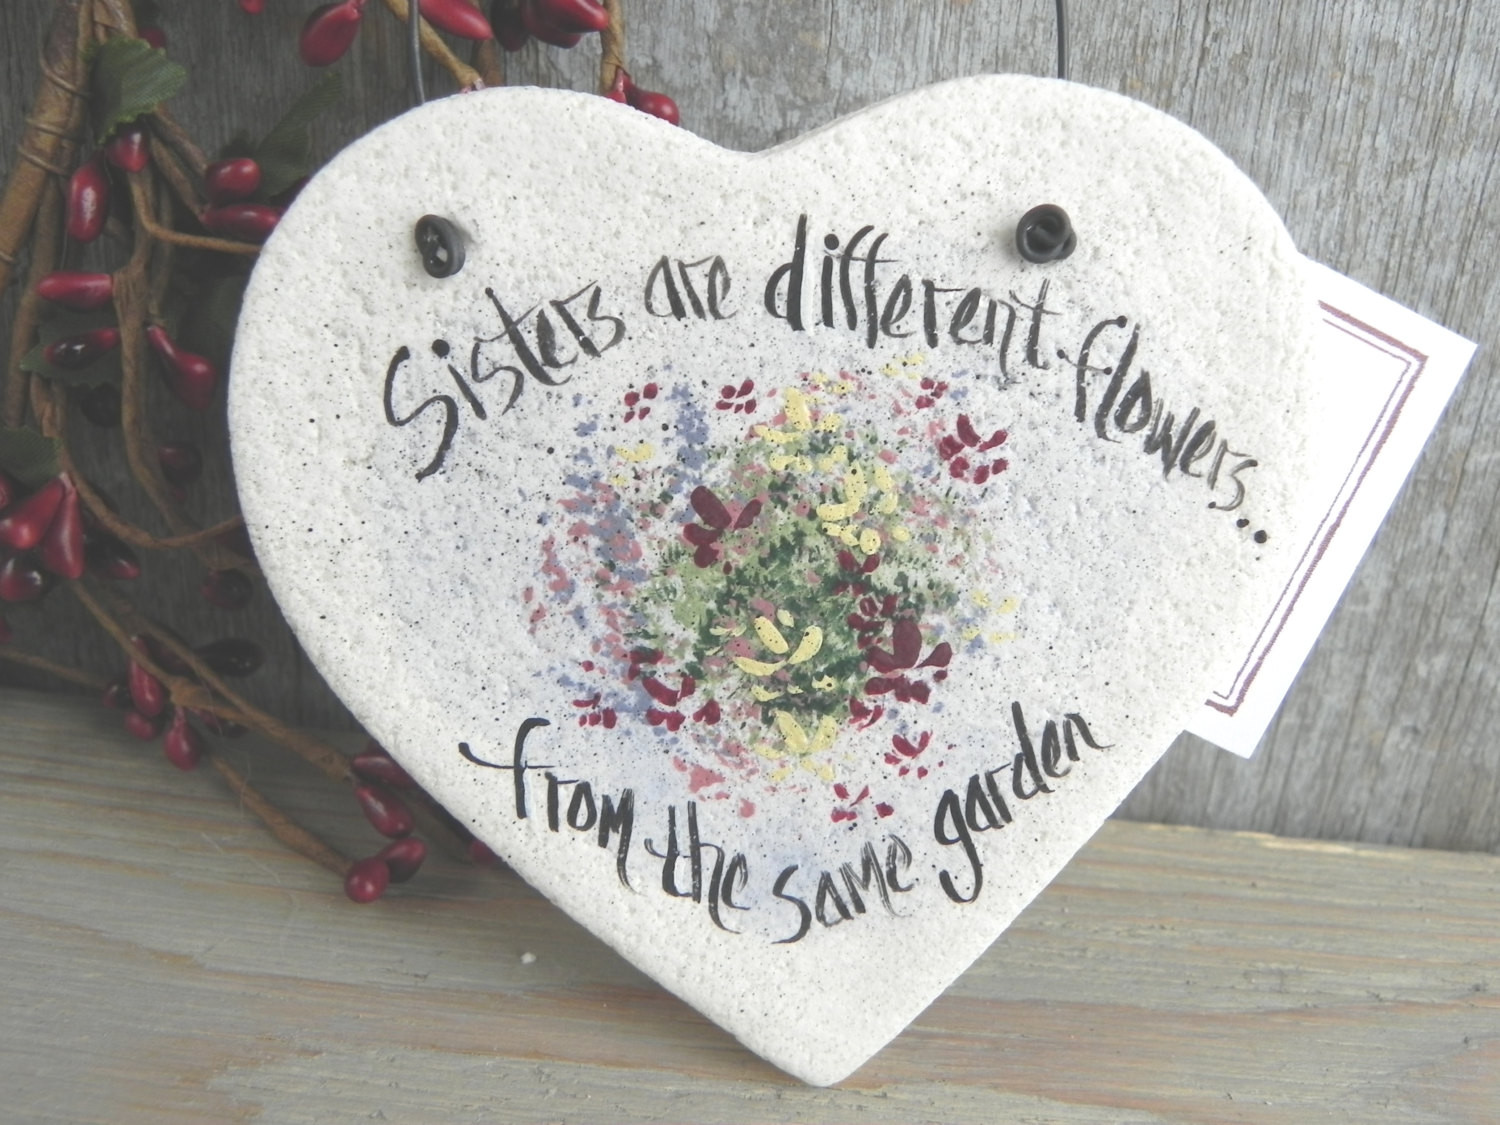 Best ideas about DIY Gifts For Sister . Save or Pin Sister Gift Salt Dough Heart Ornament Birthday Now.